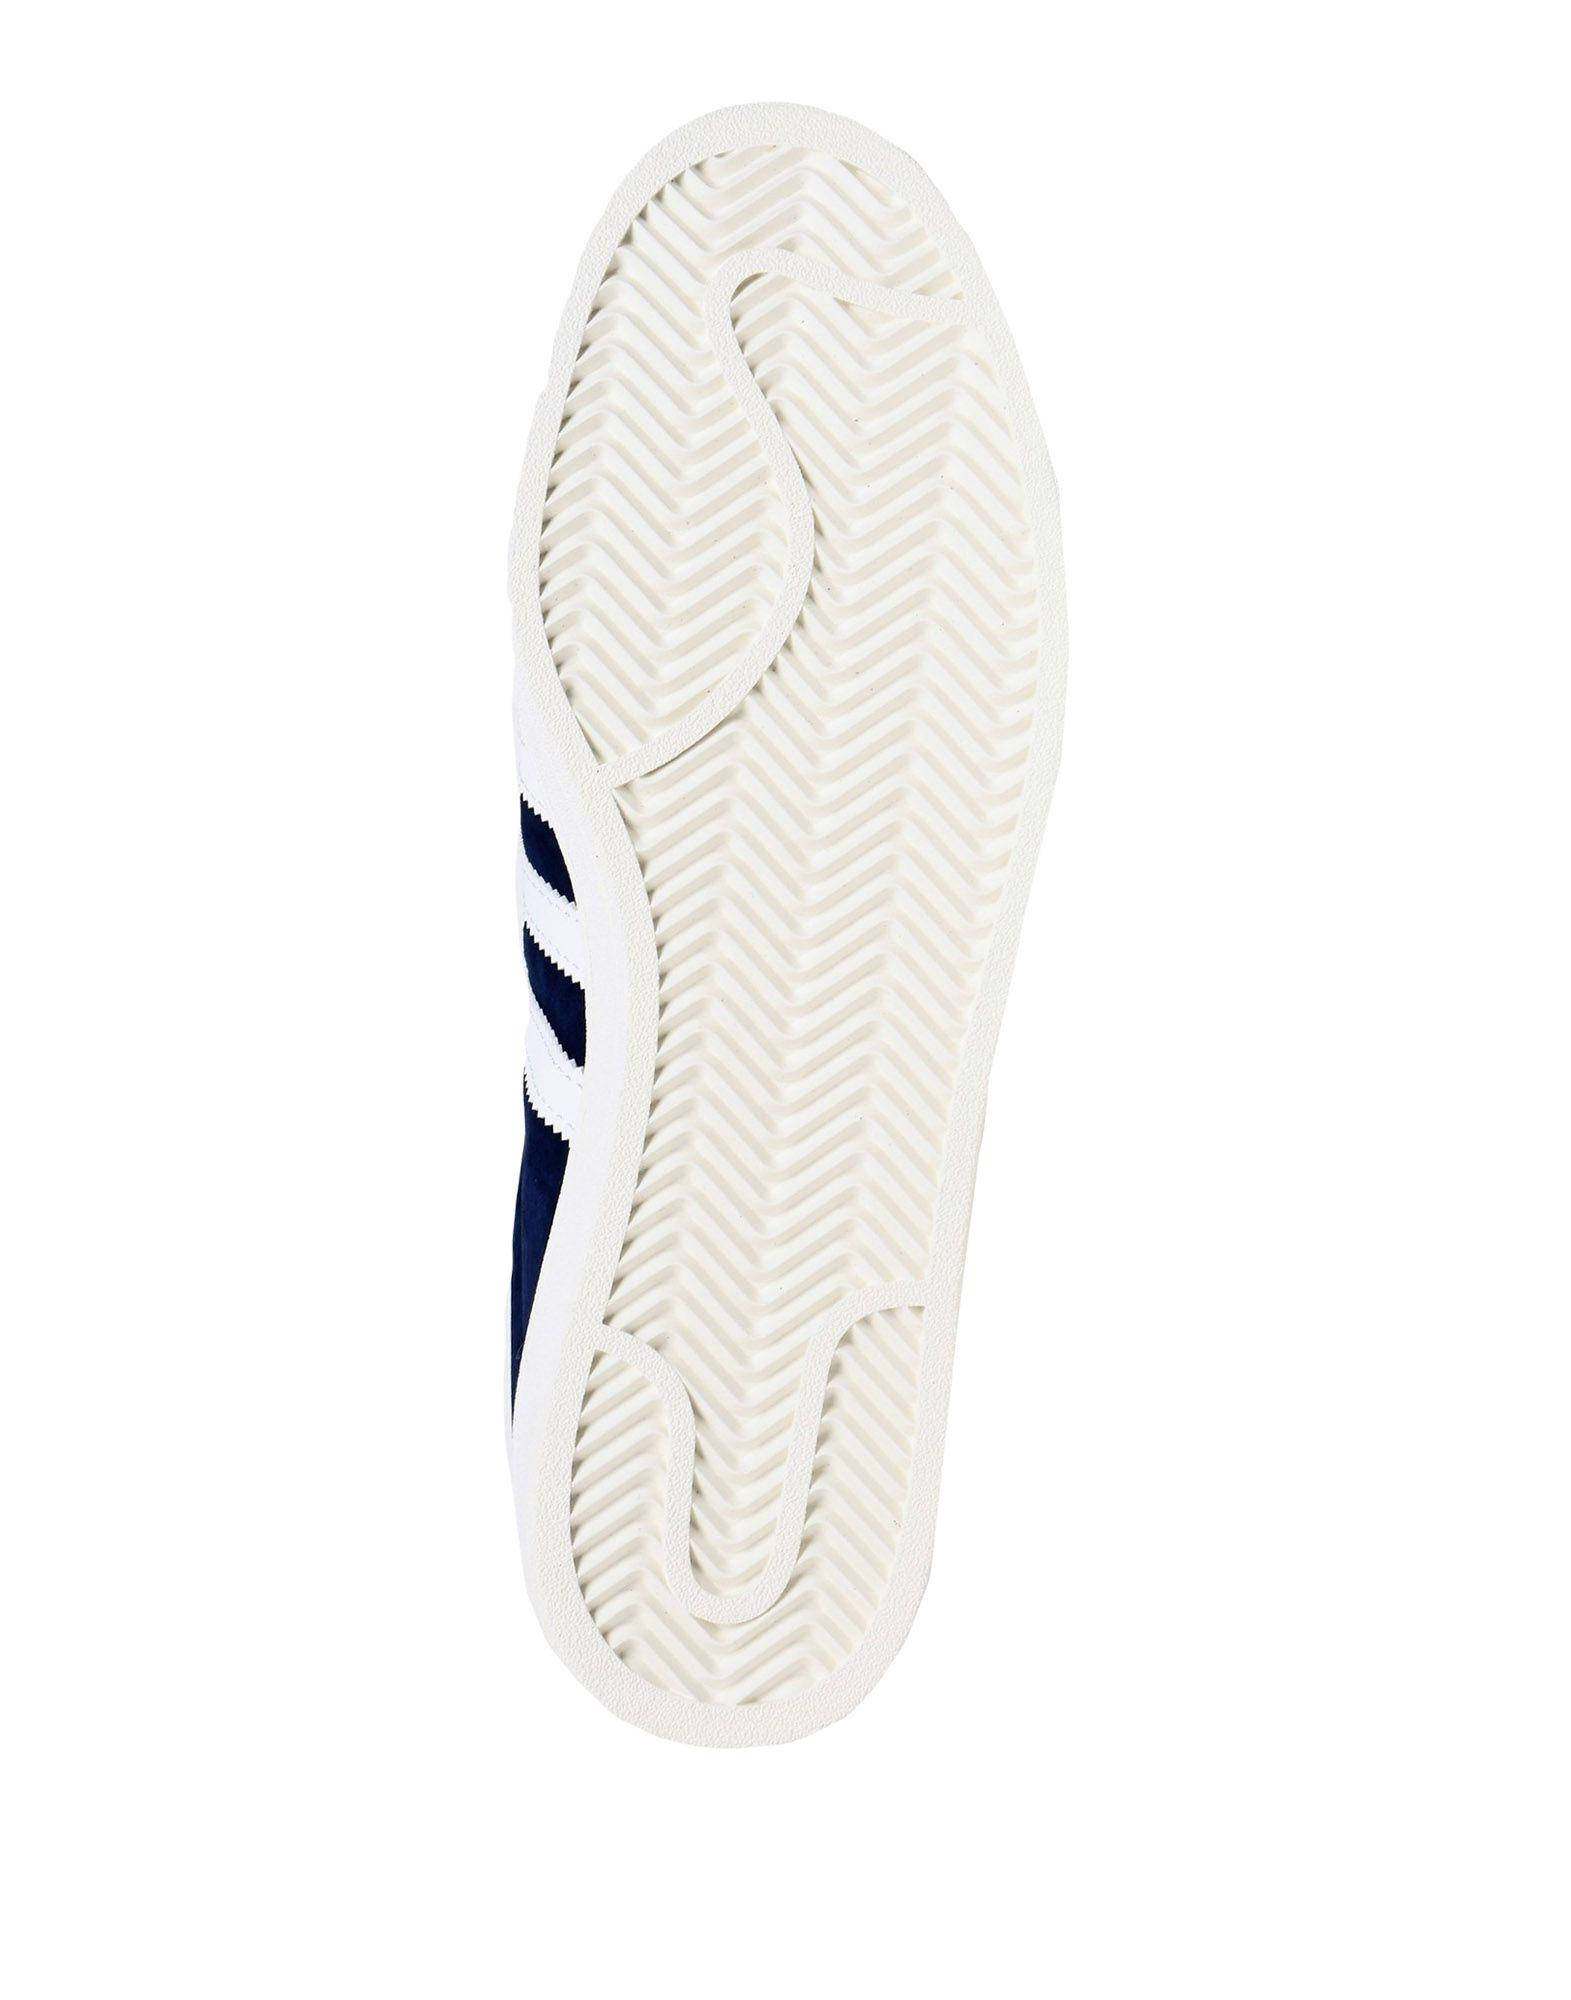 In Blue Lyst Originals Sneakers Topsamp; Adidas Low hQrdCtsx